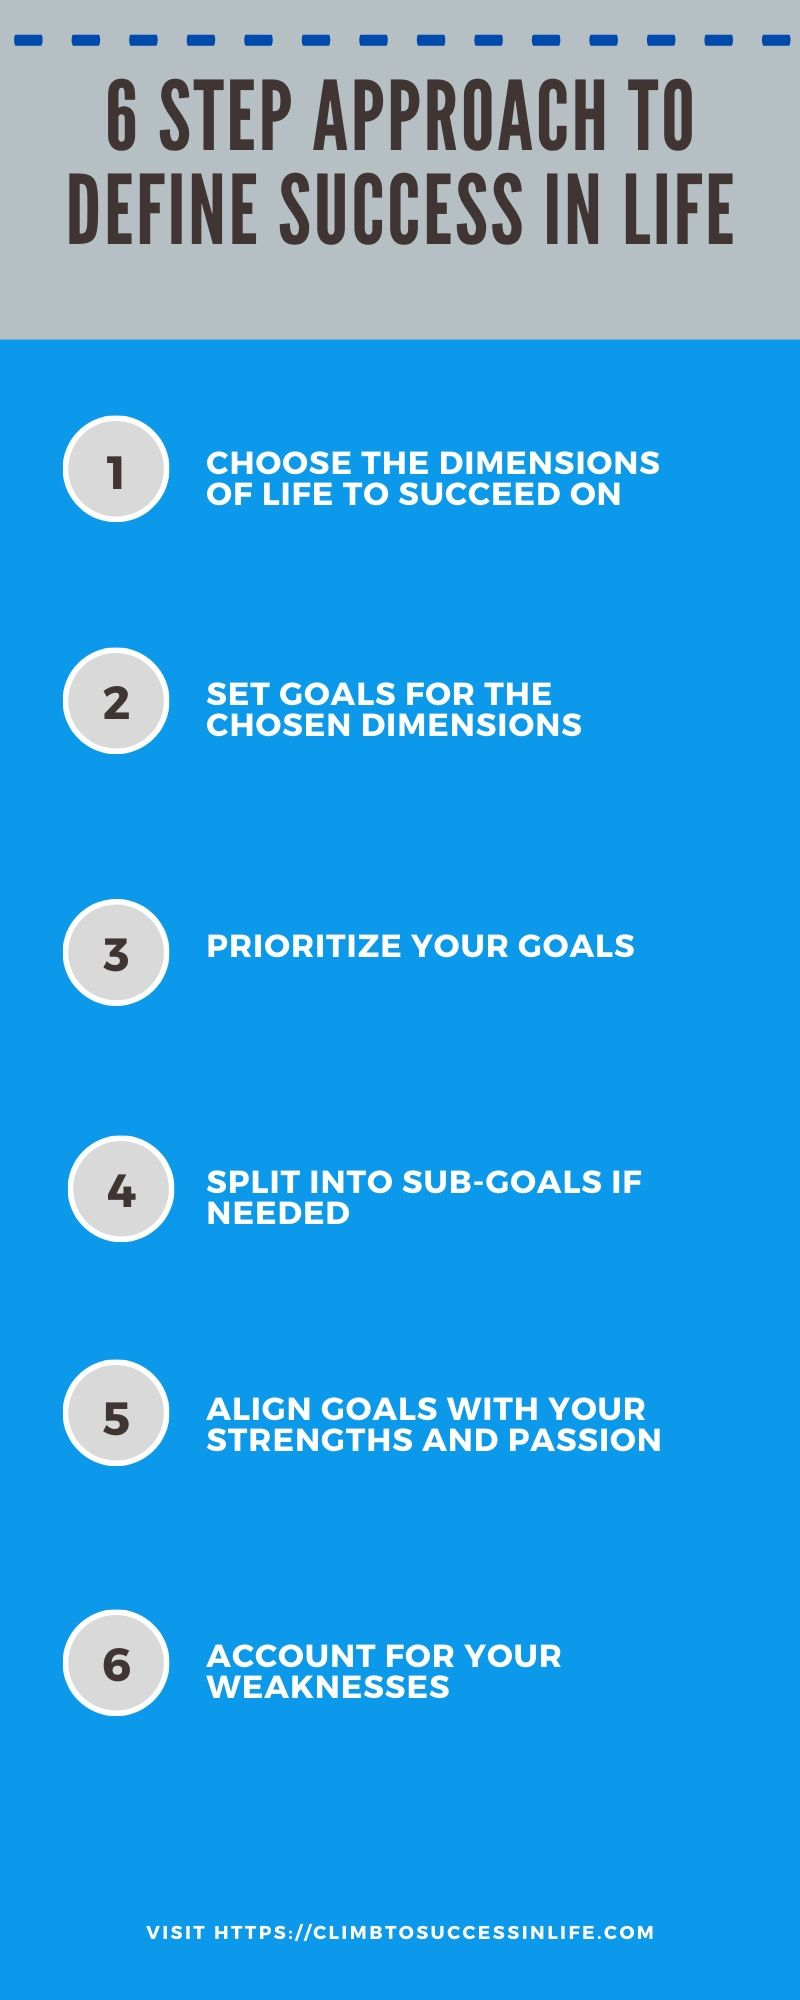 6 steps to define success in life